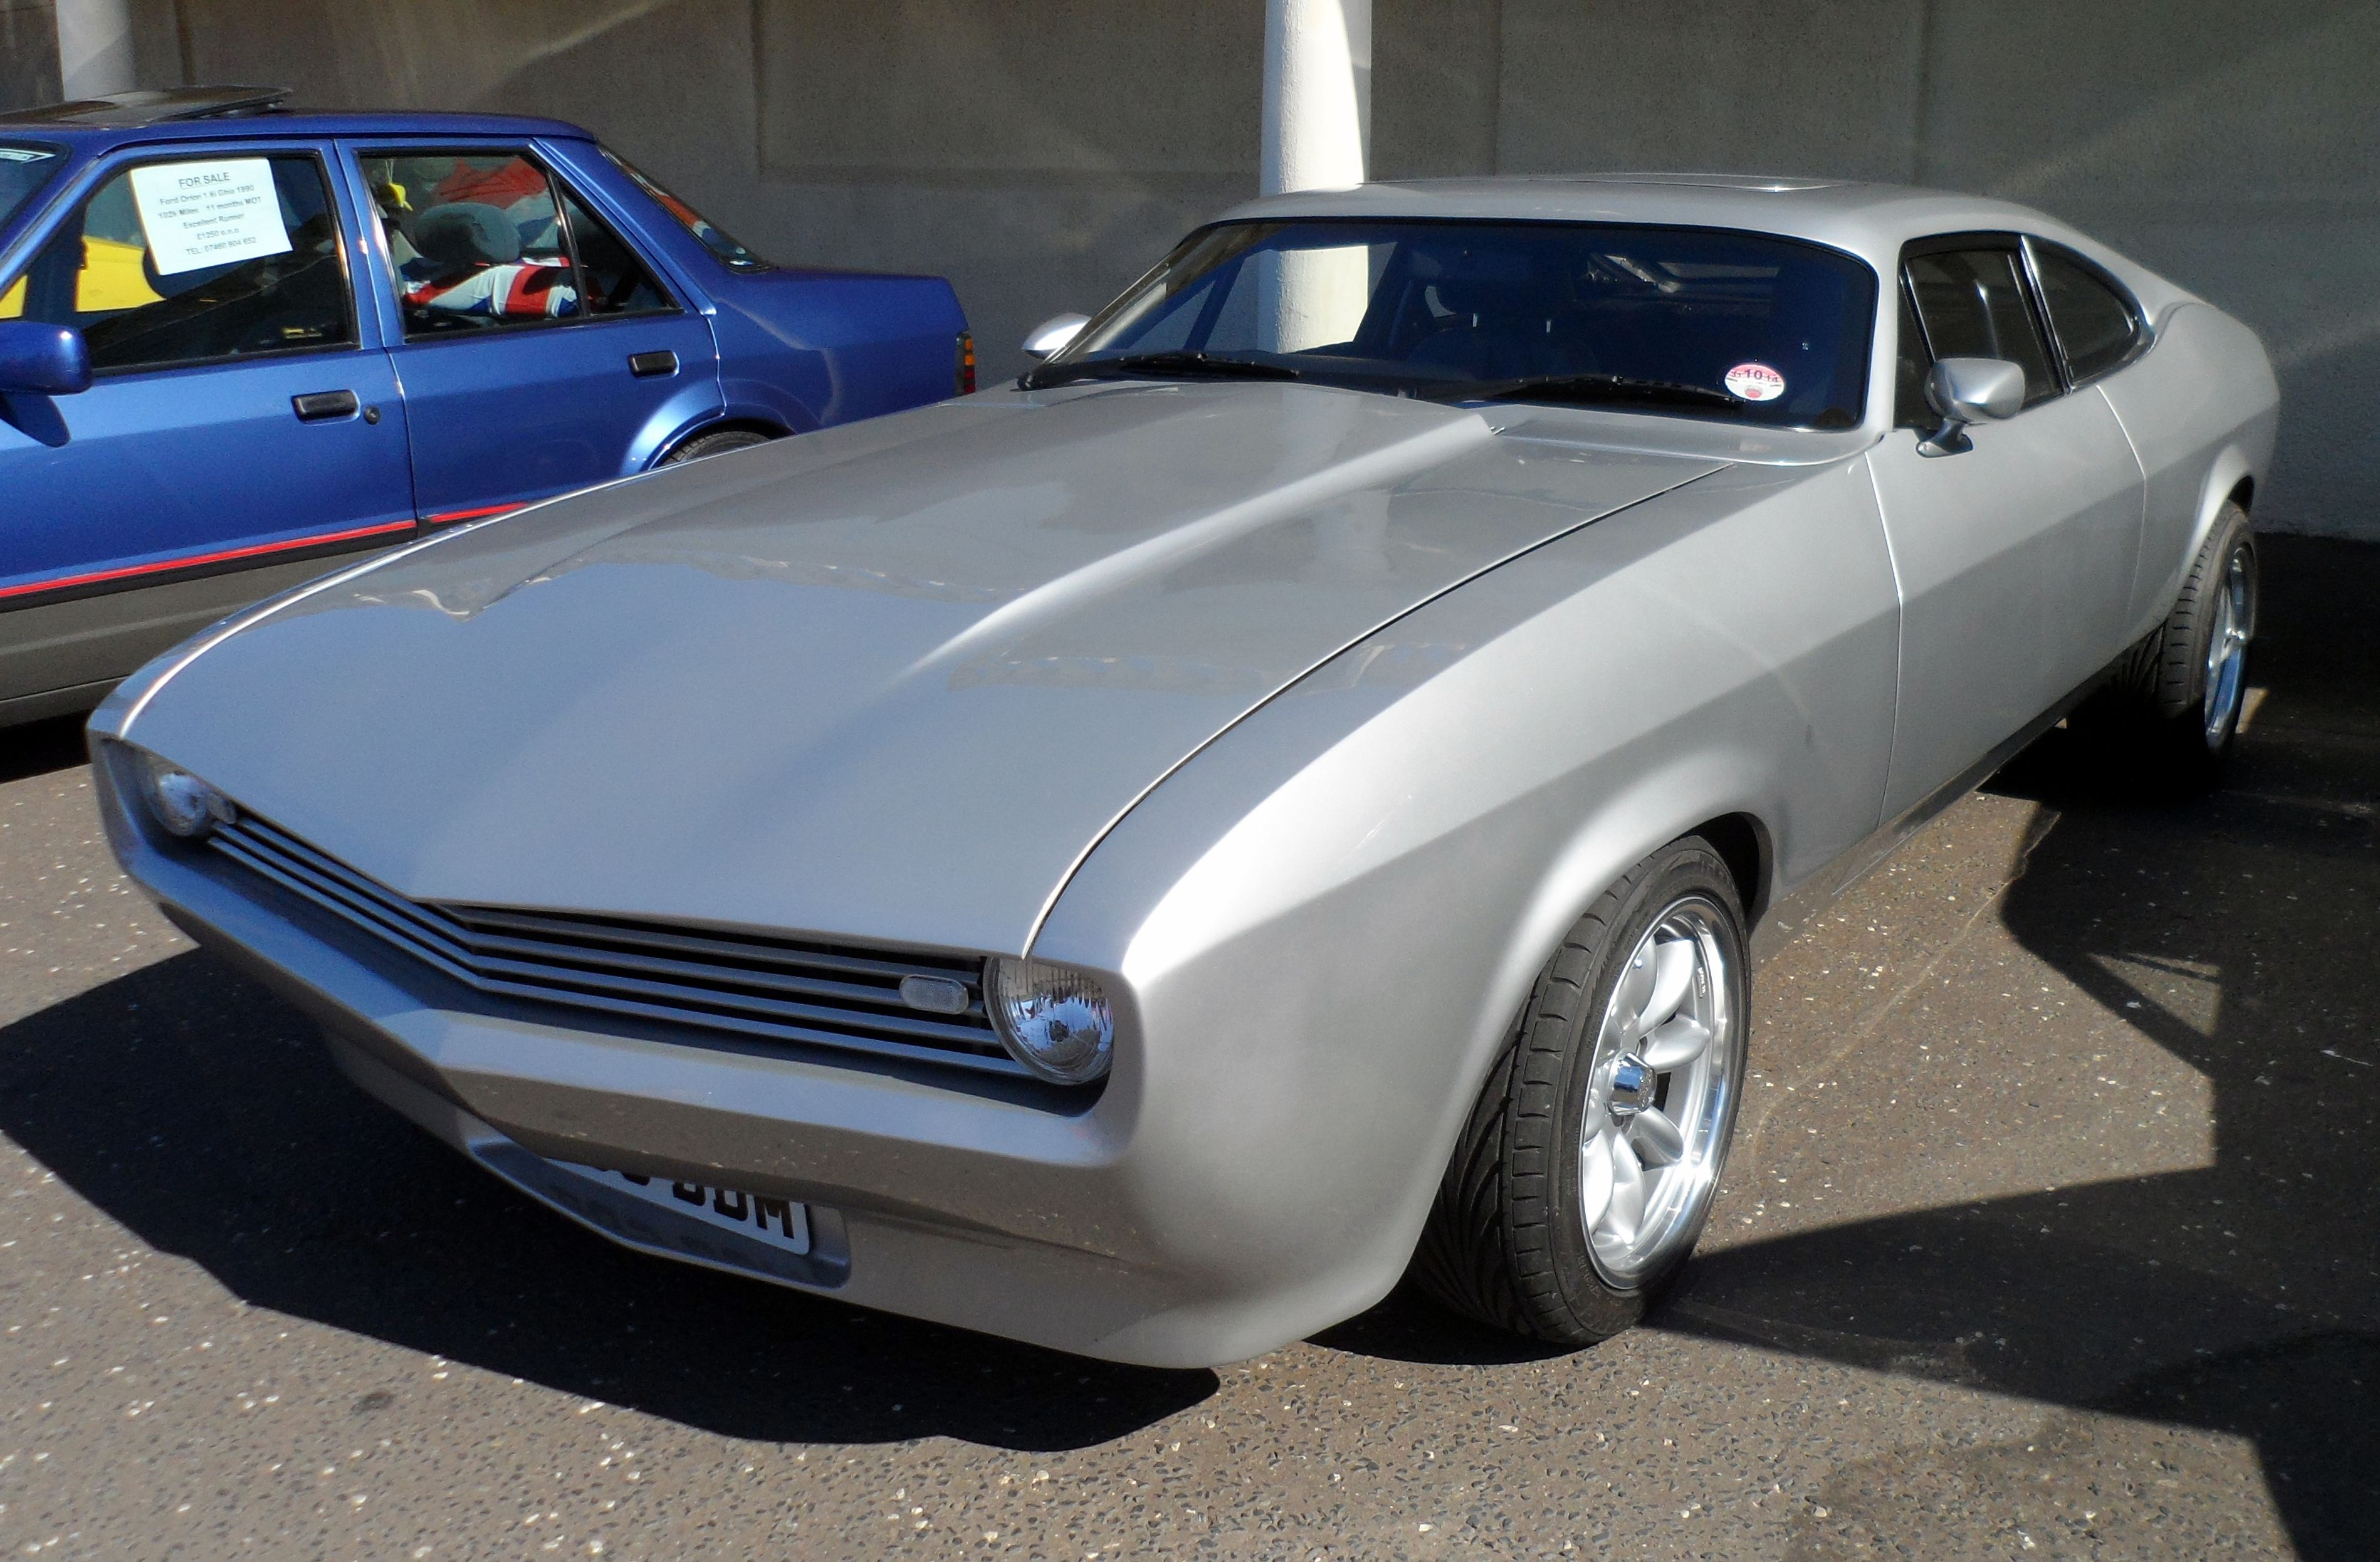 Heavily Modified Customised Ford Capri Ford Capri Classic